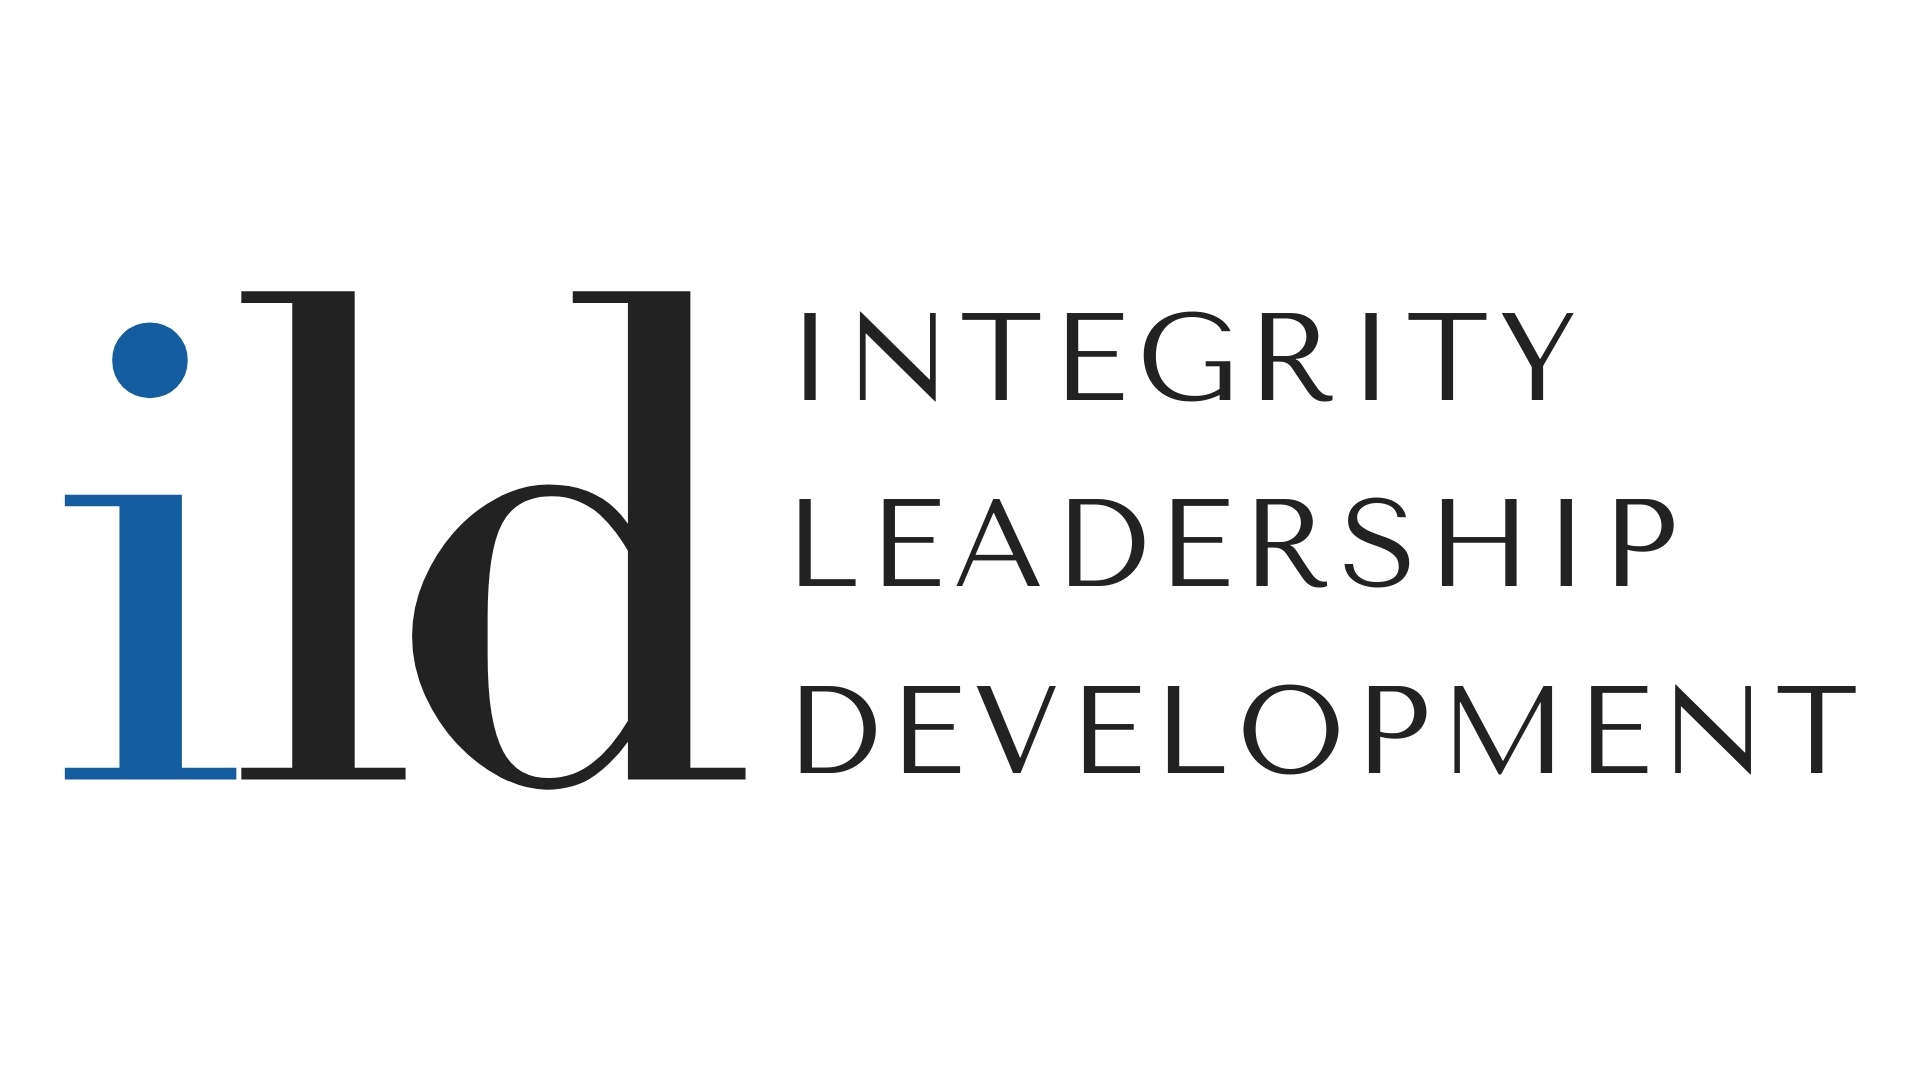 Integrity Leadership